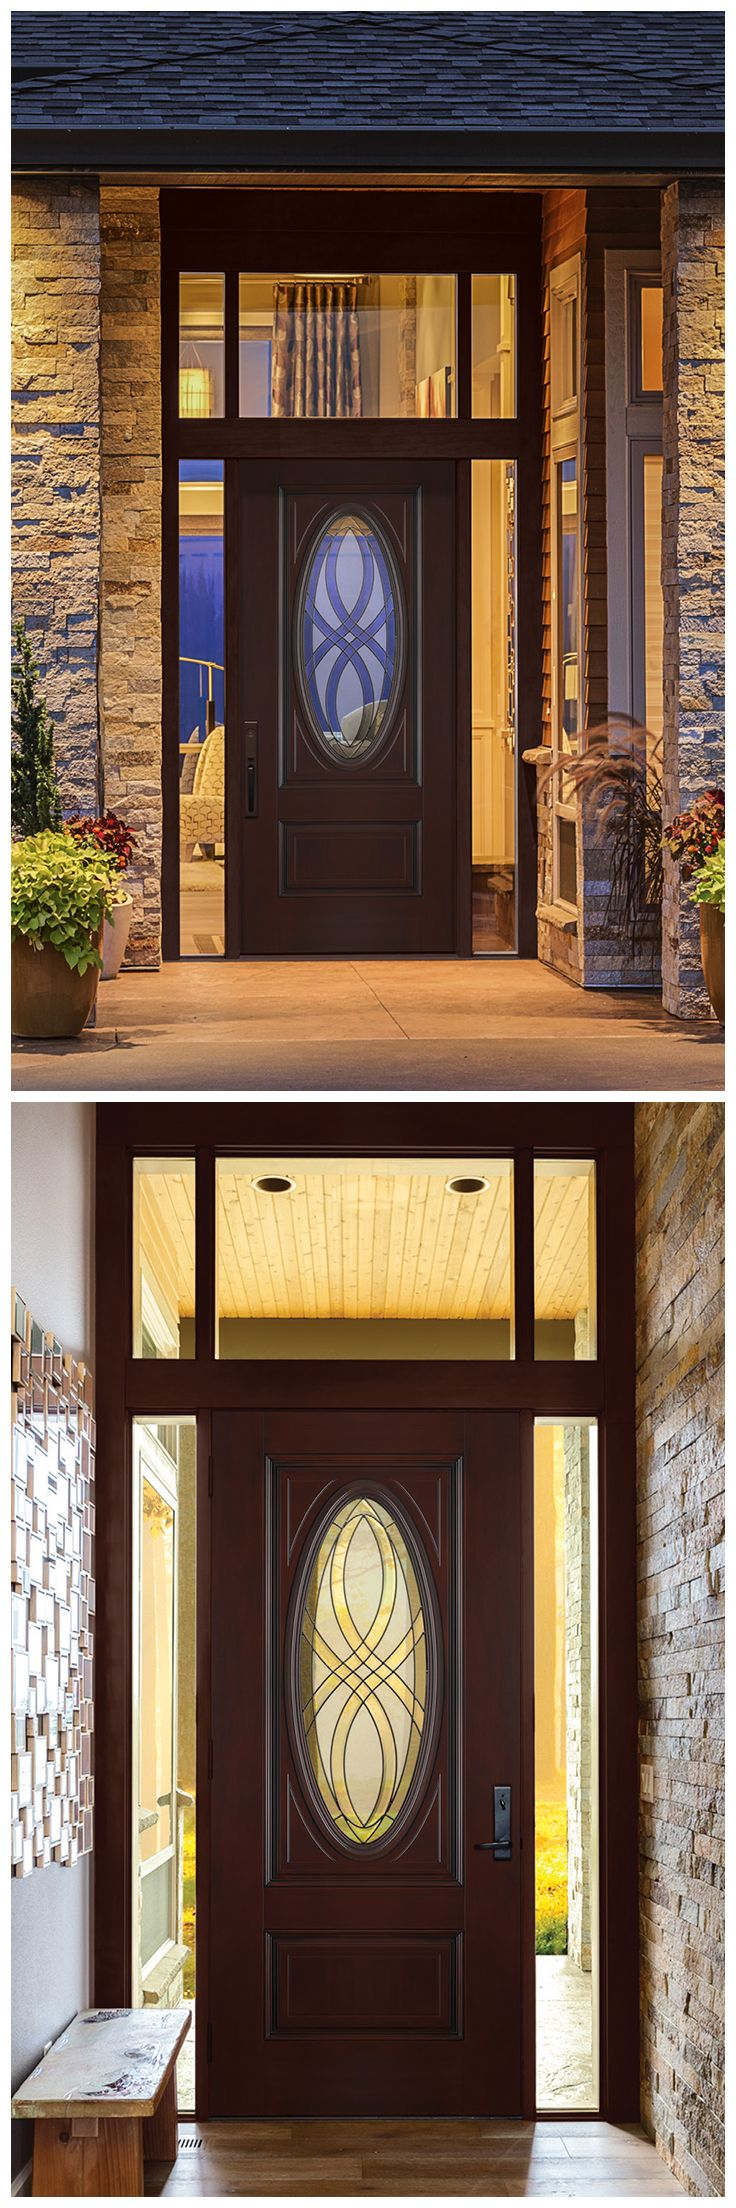 Home Depot Doors Exterior: Add Style To Your Home And Subtract Dollars From Your